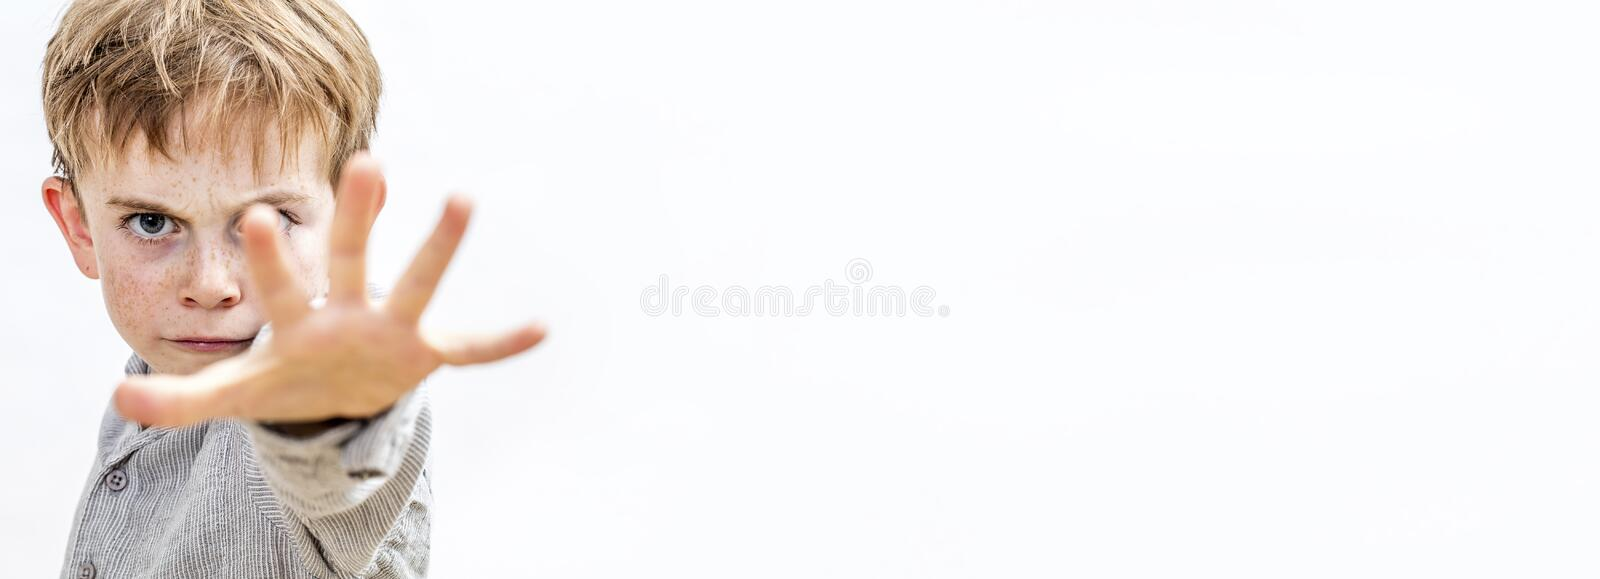 Child with hand forwards defending himself or acting bully, banner. Long banner of scared little child with hand forwards defending himself, stopping violence or royalty free stock photos